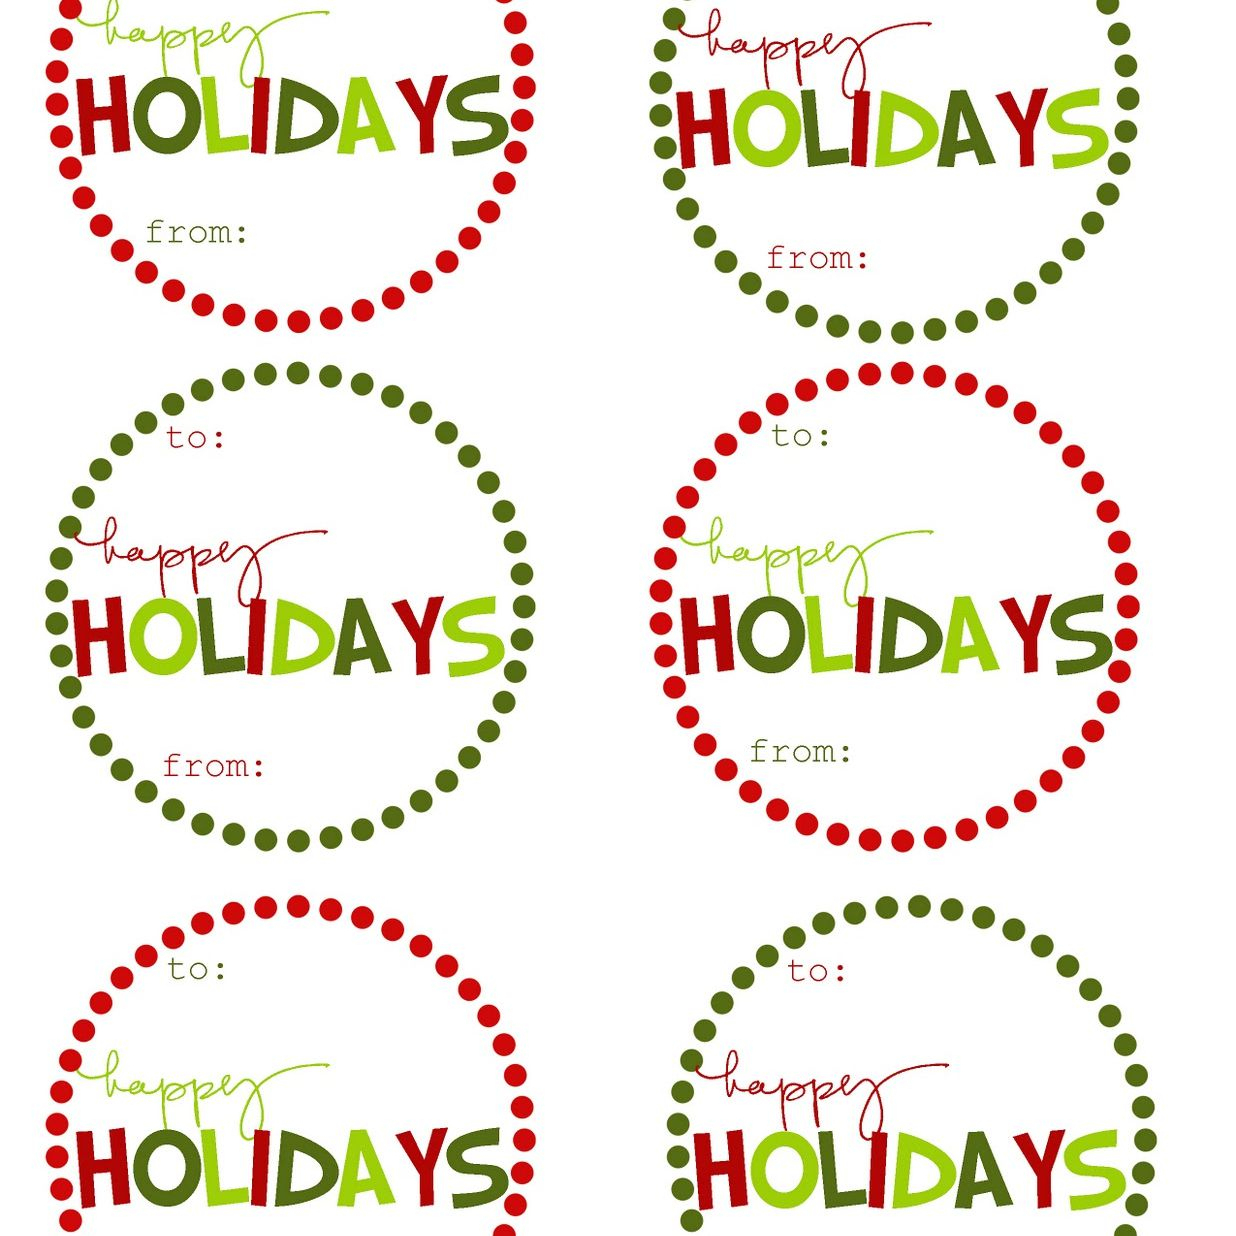 40 Sets Of Free Printable Christmas Gift Tags - Free Printable Holiday Stickers